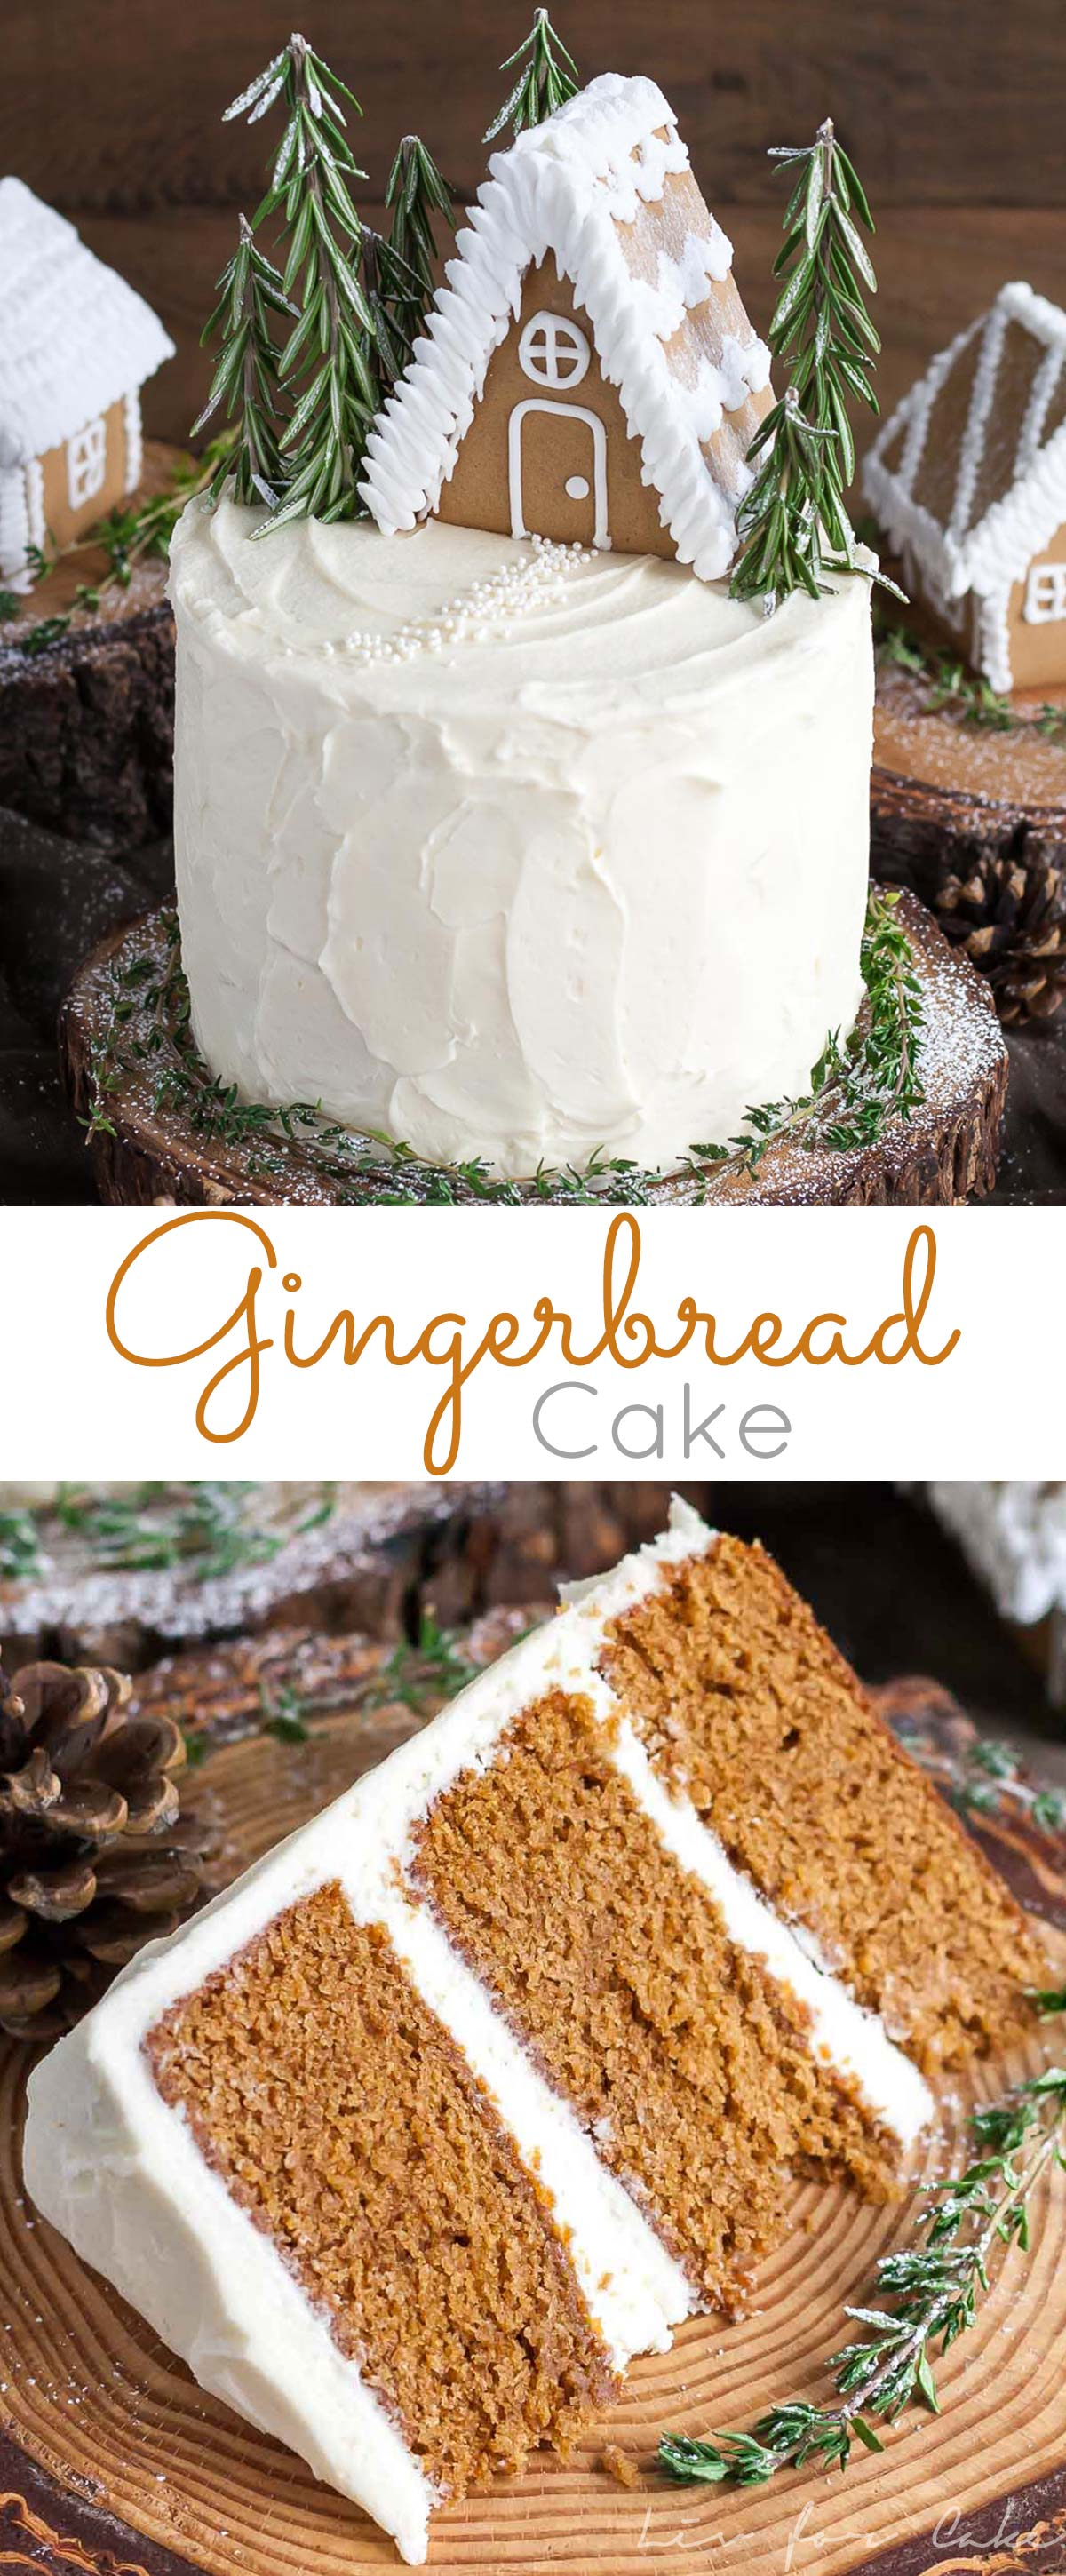 This Gingerbread Cake is perfect for the holidays! A moist and delicious ginger cake with a tangy cream cheese frosting. | livforcake.com